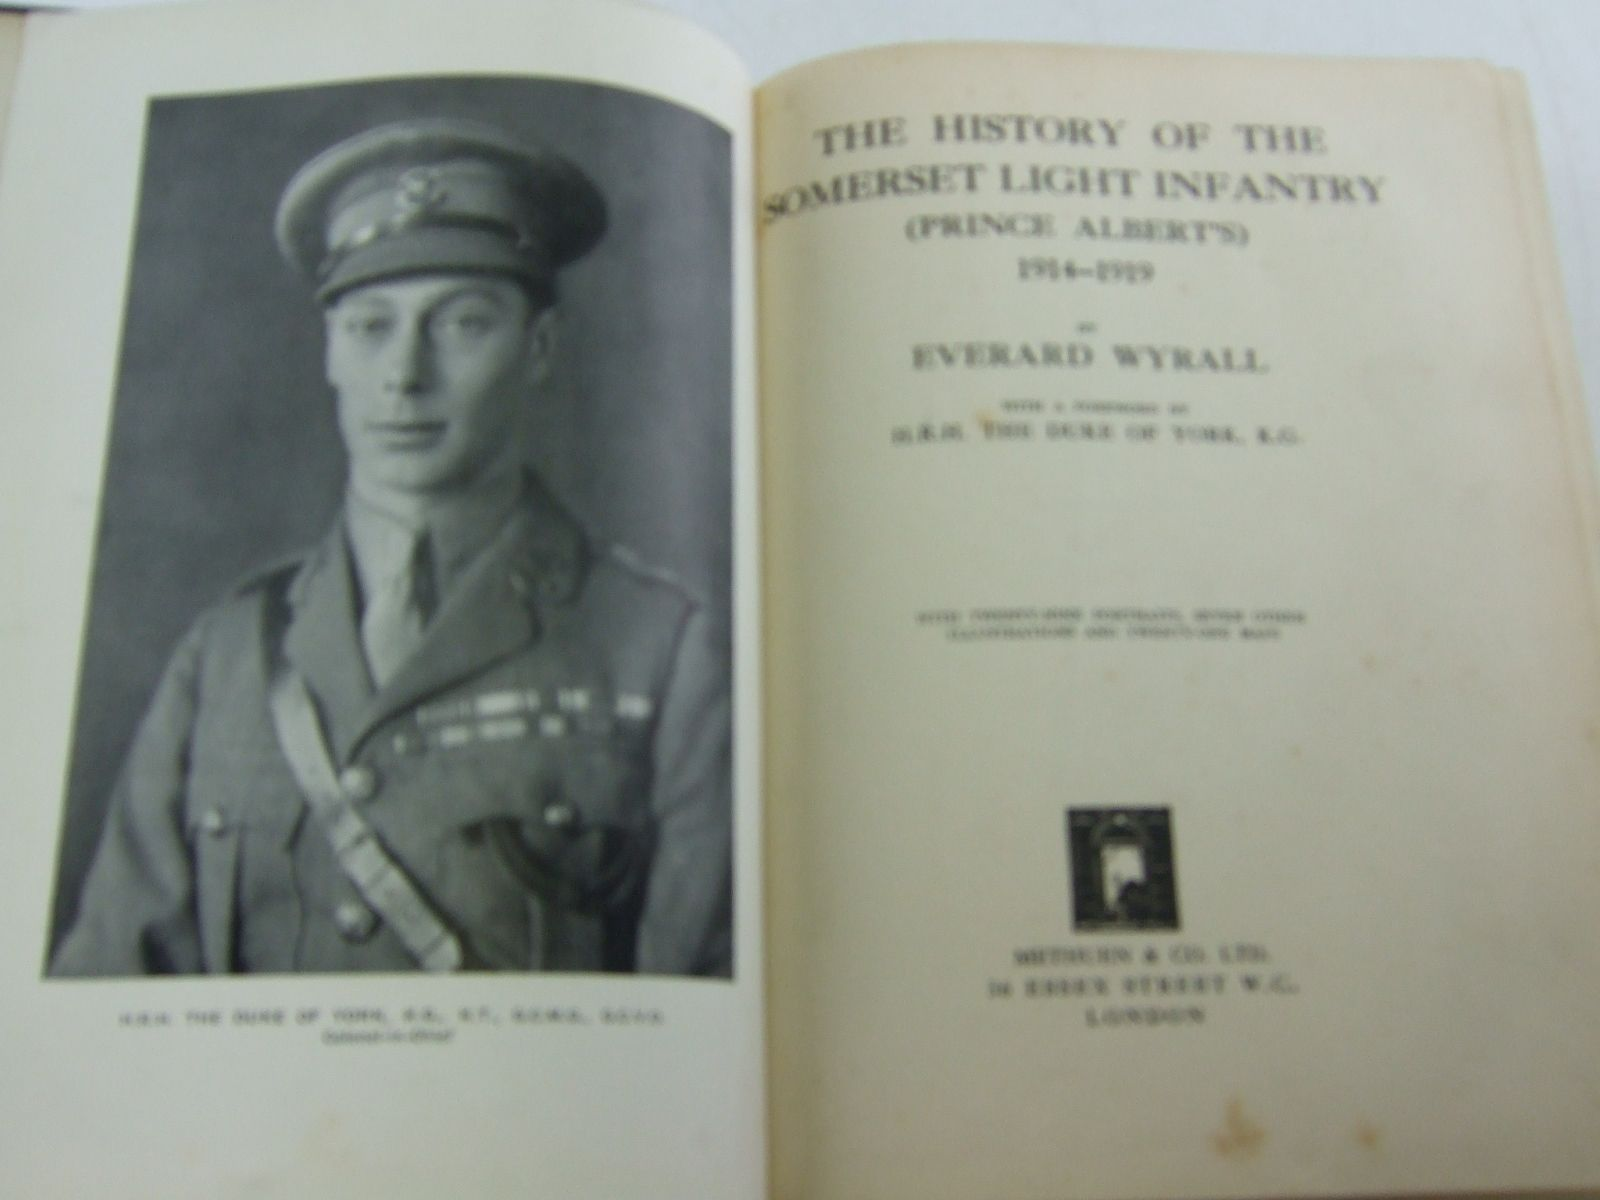 Photo of THE HISTORY OF THE SOMERSET LIGHT INFANTRY (PRINCE ALBERT'S) 1914-1919 written by Wyrall, Everard published by Methuen & Co. Ltd. (STOCK CODE: 2109024)  for sale by Stella & Rose's Books